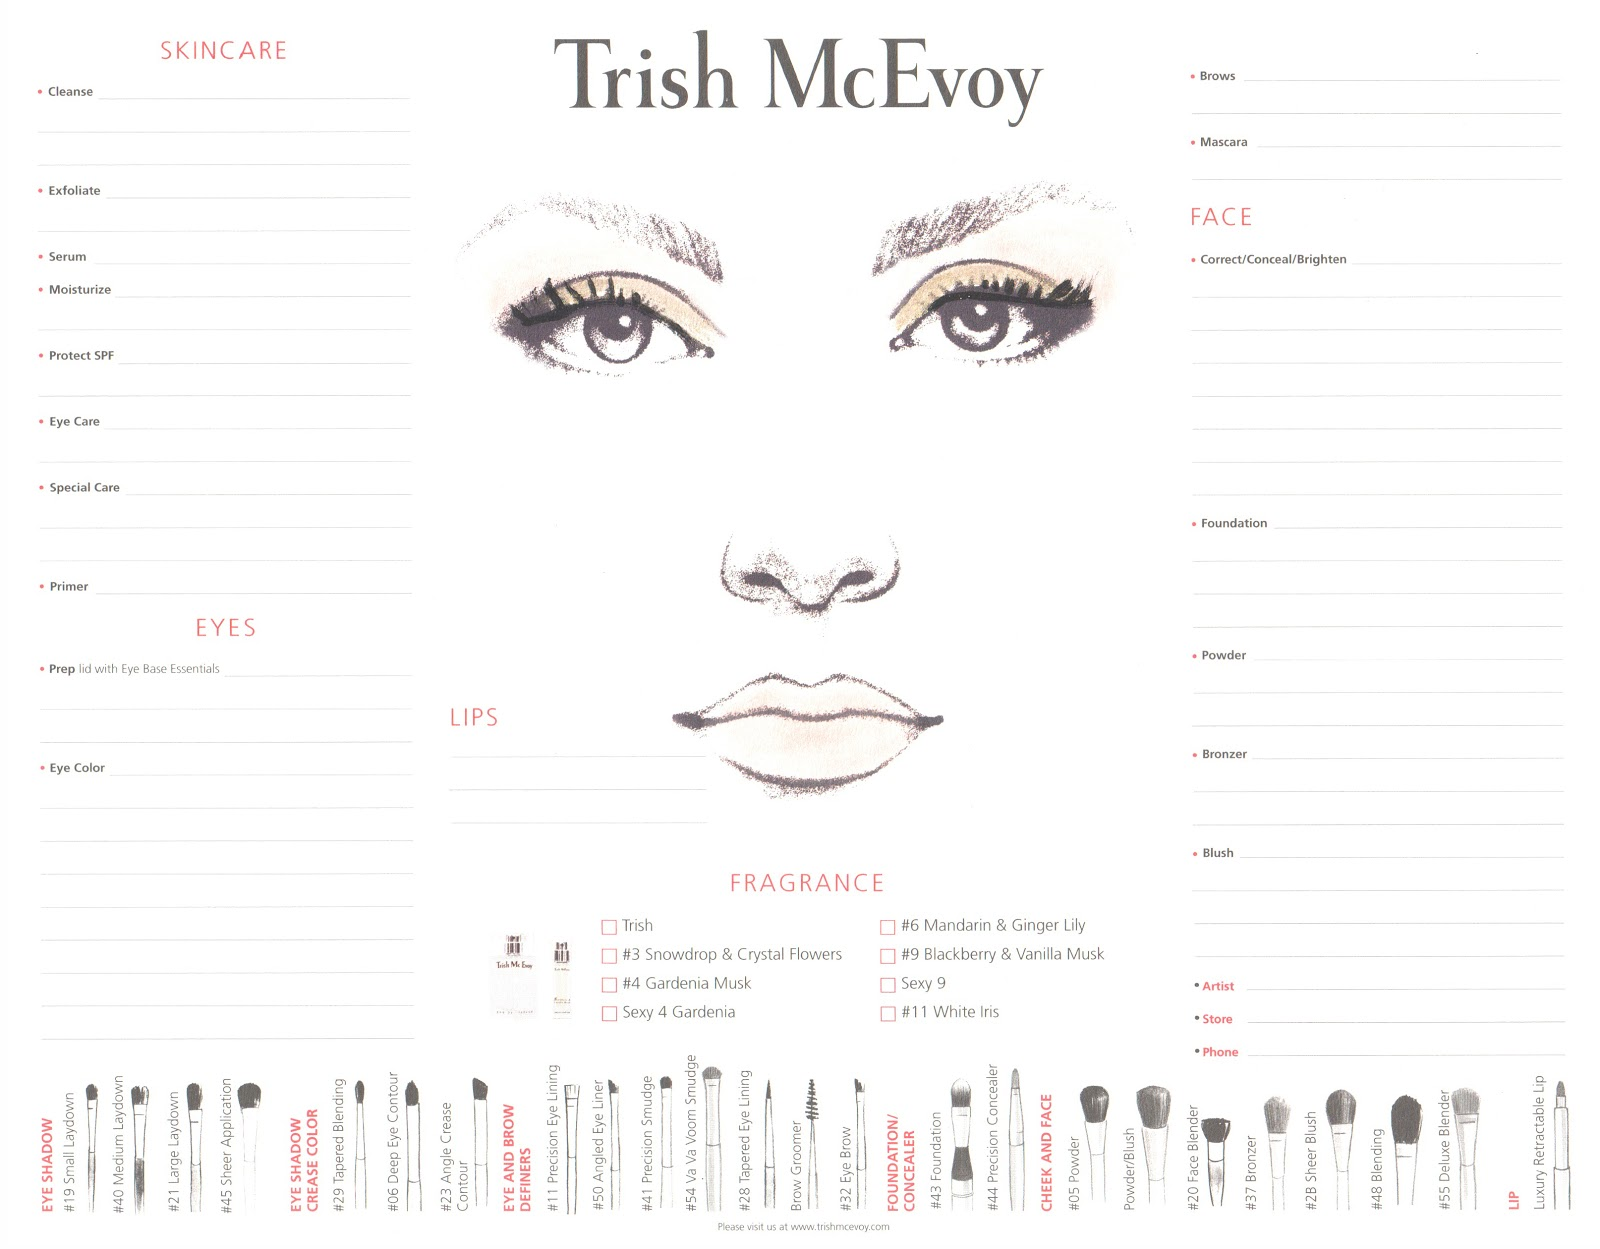 Beauty: Impress Your Date With Sultry Eyes And Soft Lips